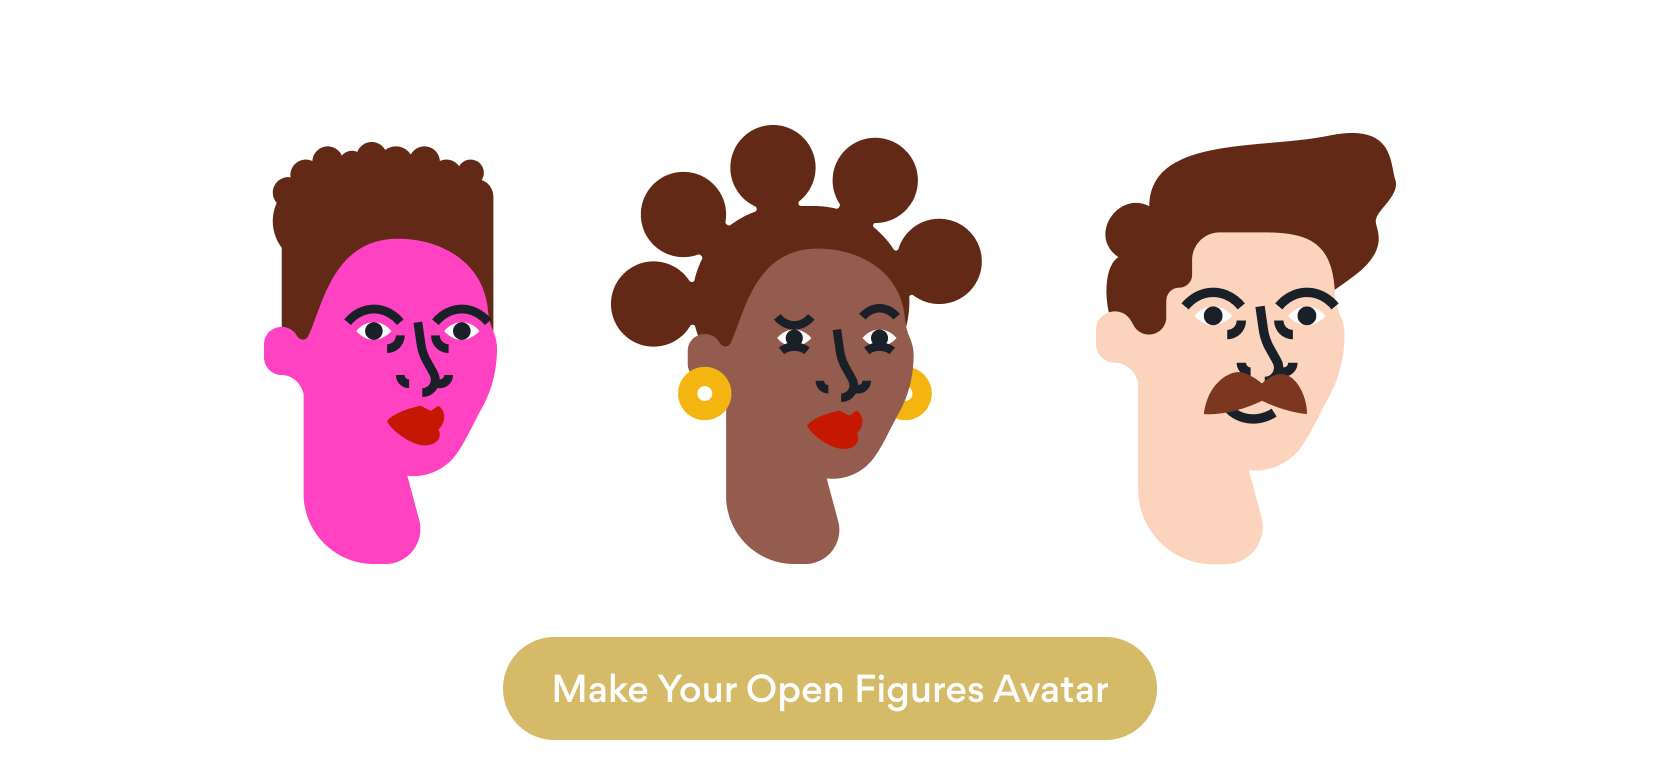 Make your open figures avatar